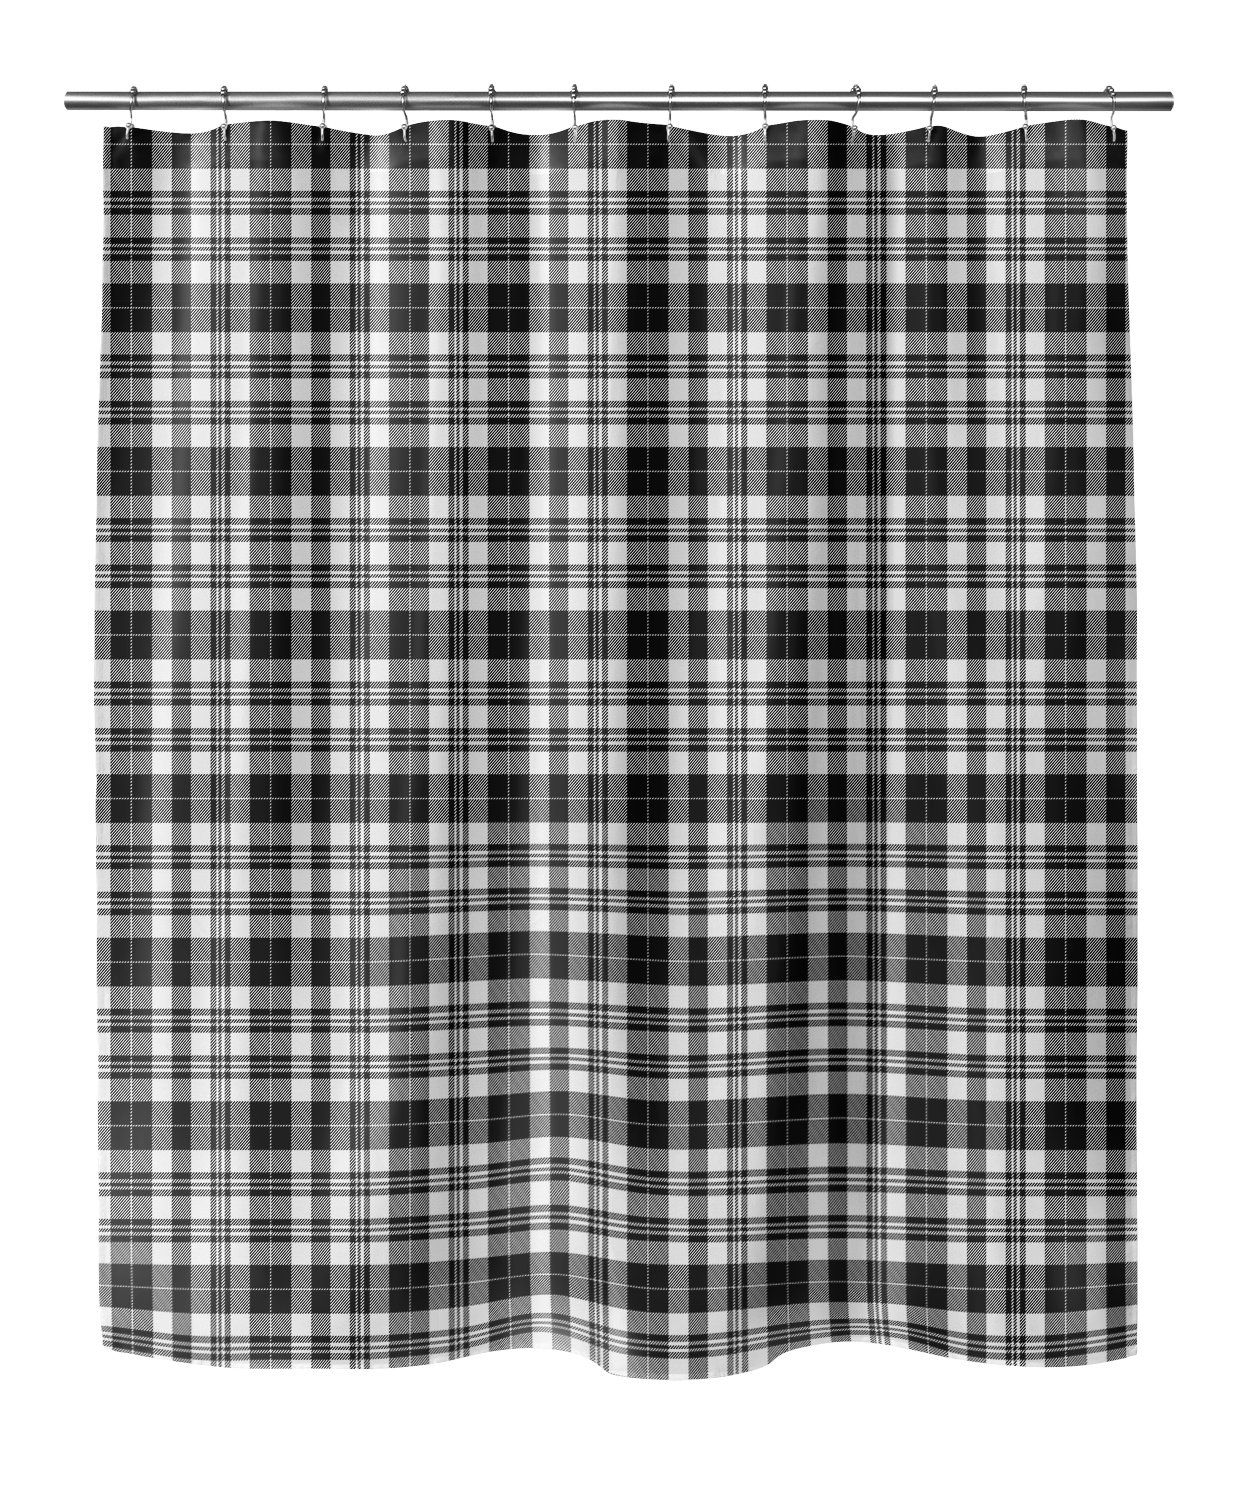 Photo of NOHO PLAID BLACK AND WHITE Shower Curtain By Terri Ellis – 70in x 90in